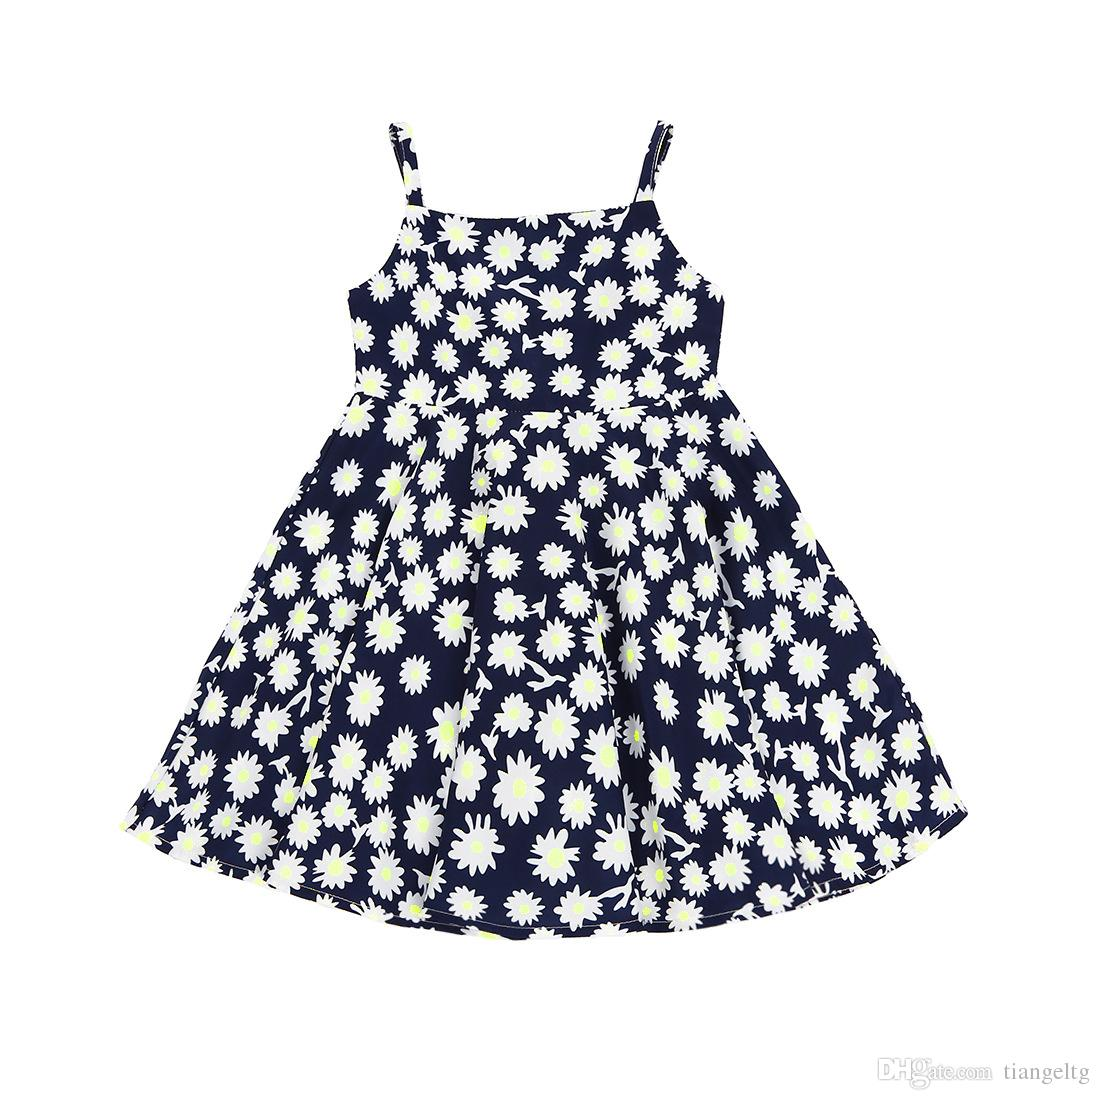 9fe5a3fa4633 2019 Girls Floral Printed Dress Small Flowers Skirt Sleeveless Baby Girls  Dresses Vest Rompers Skirt Breathable Summer Outfit 2 7T From Tiangeltg